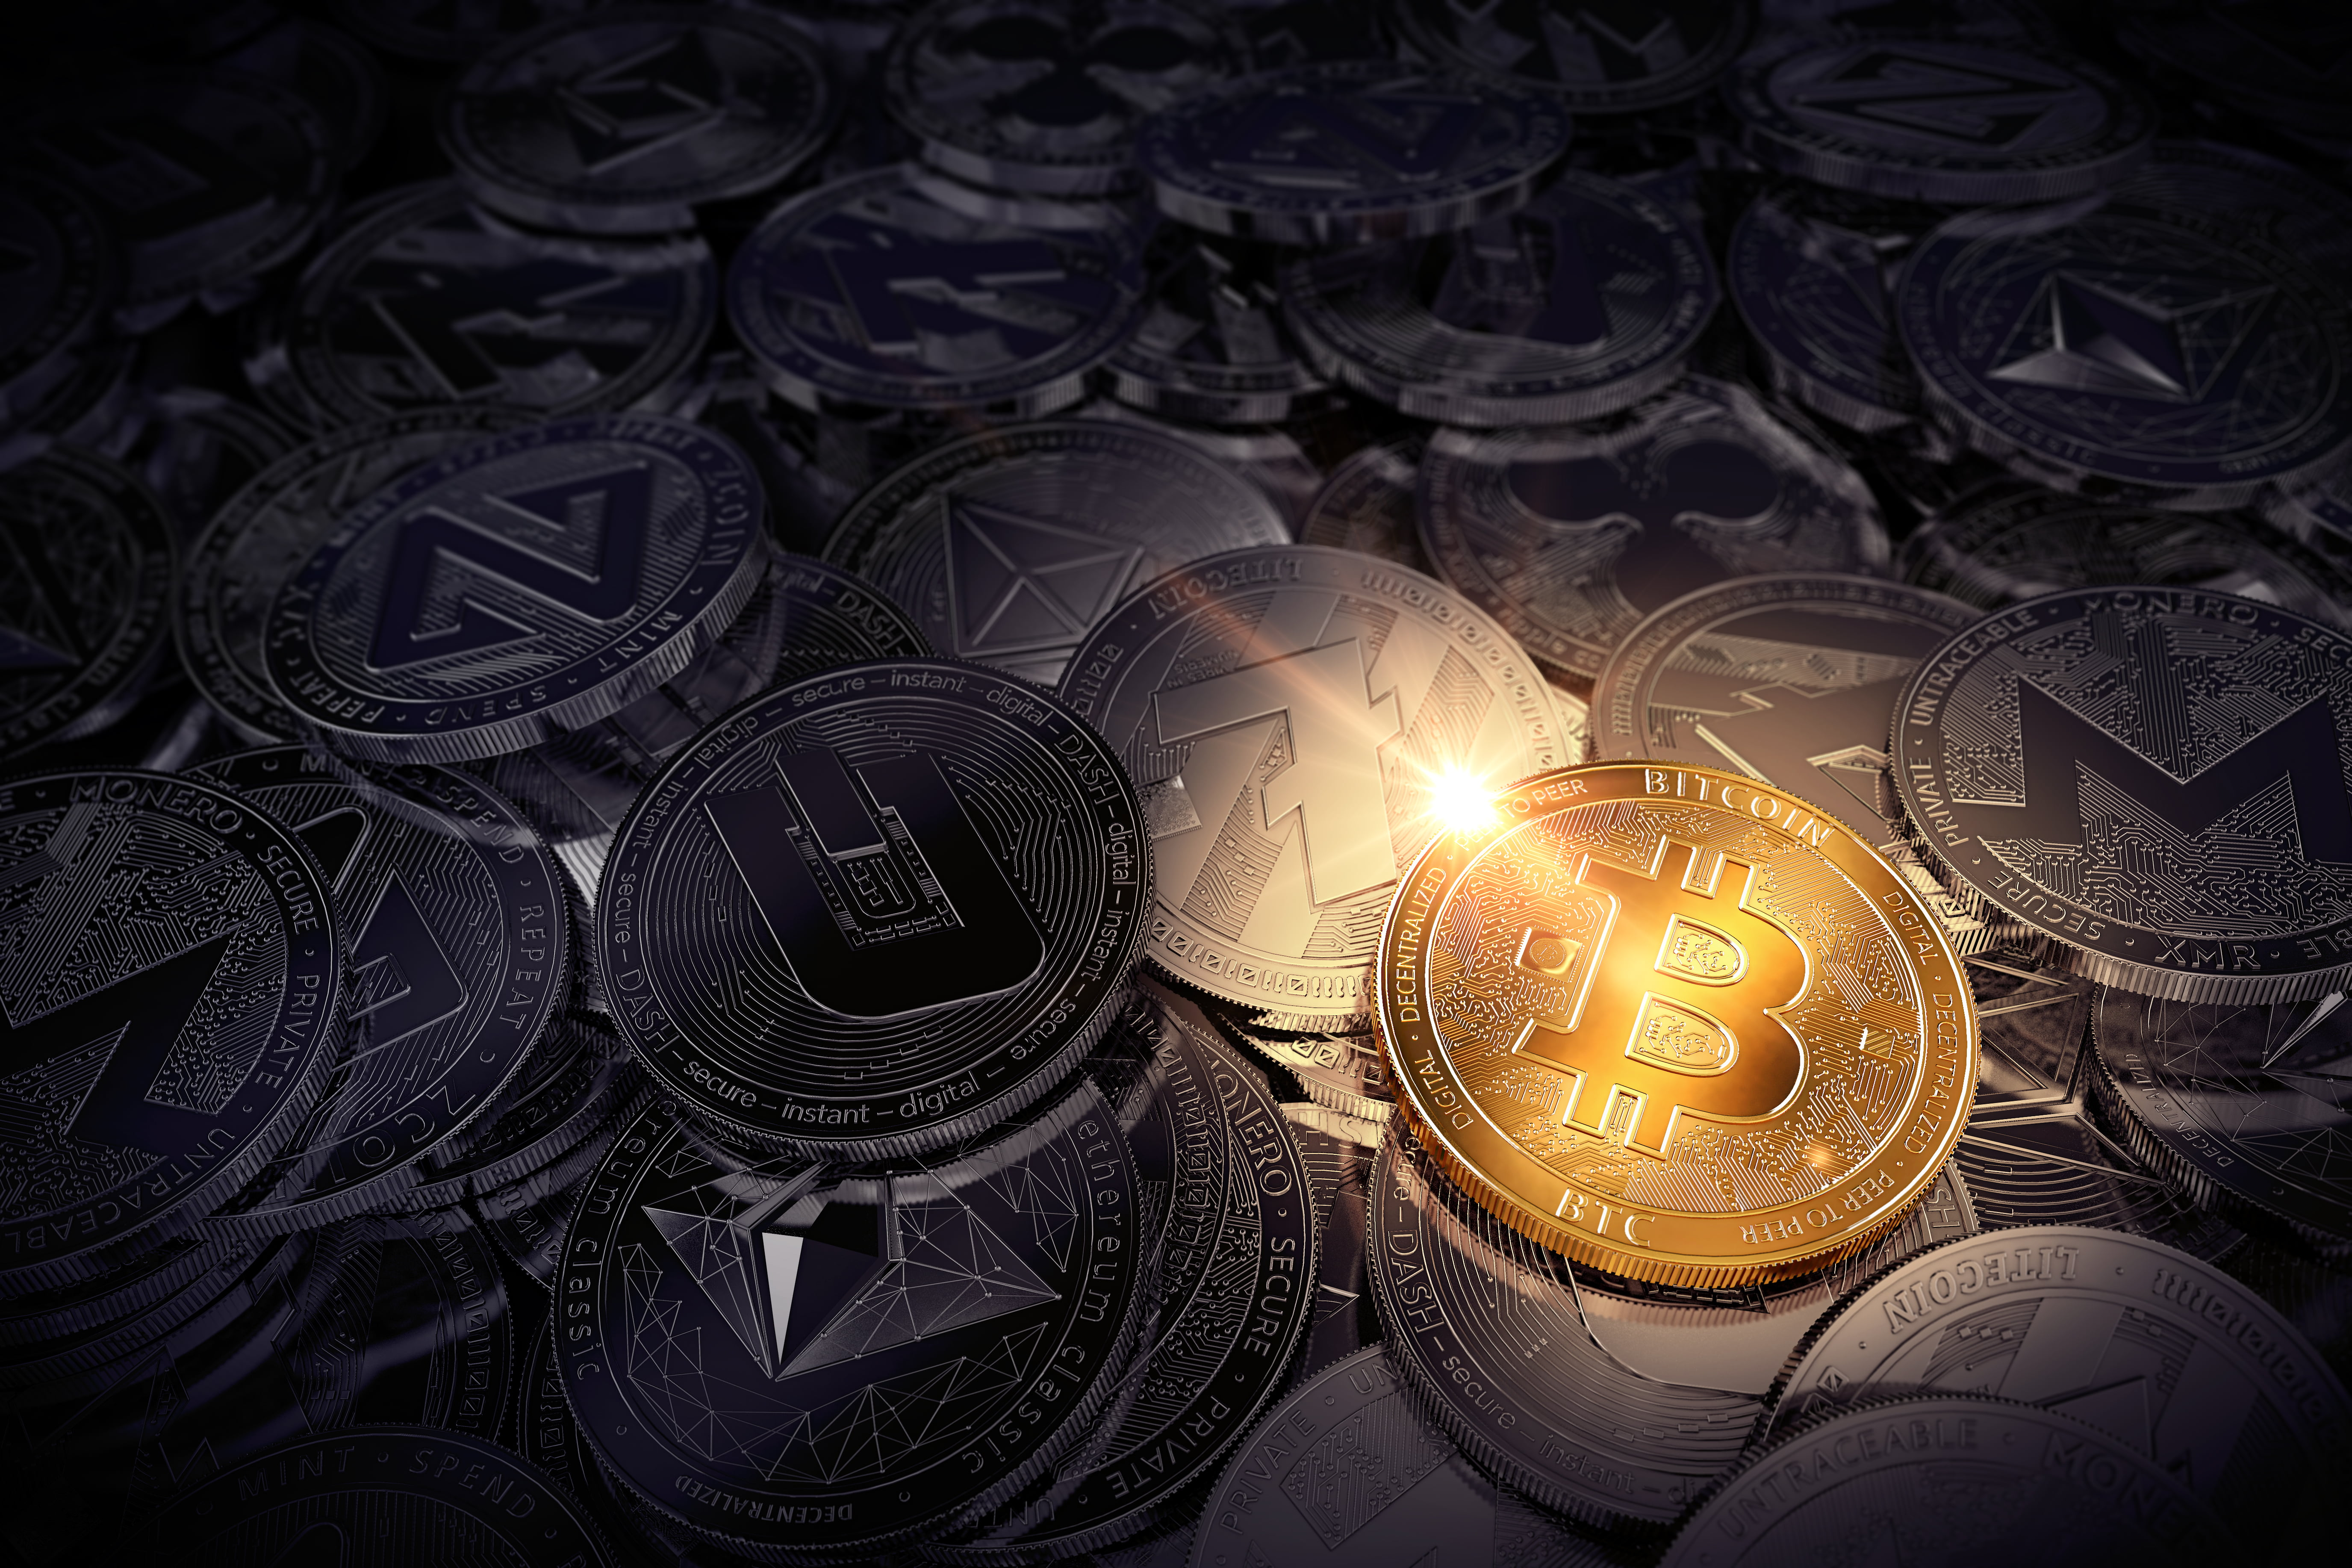 Altcoin Trader published author and altcoin trader highlights 5 crypto set